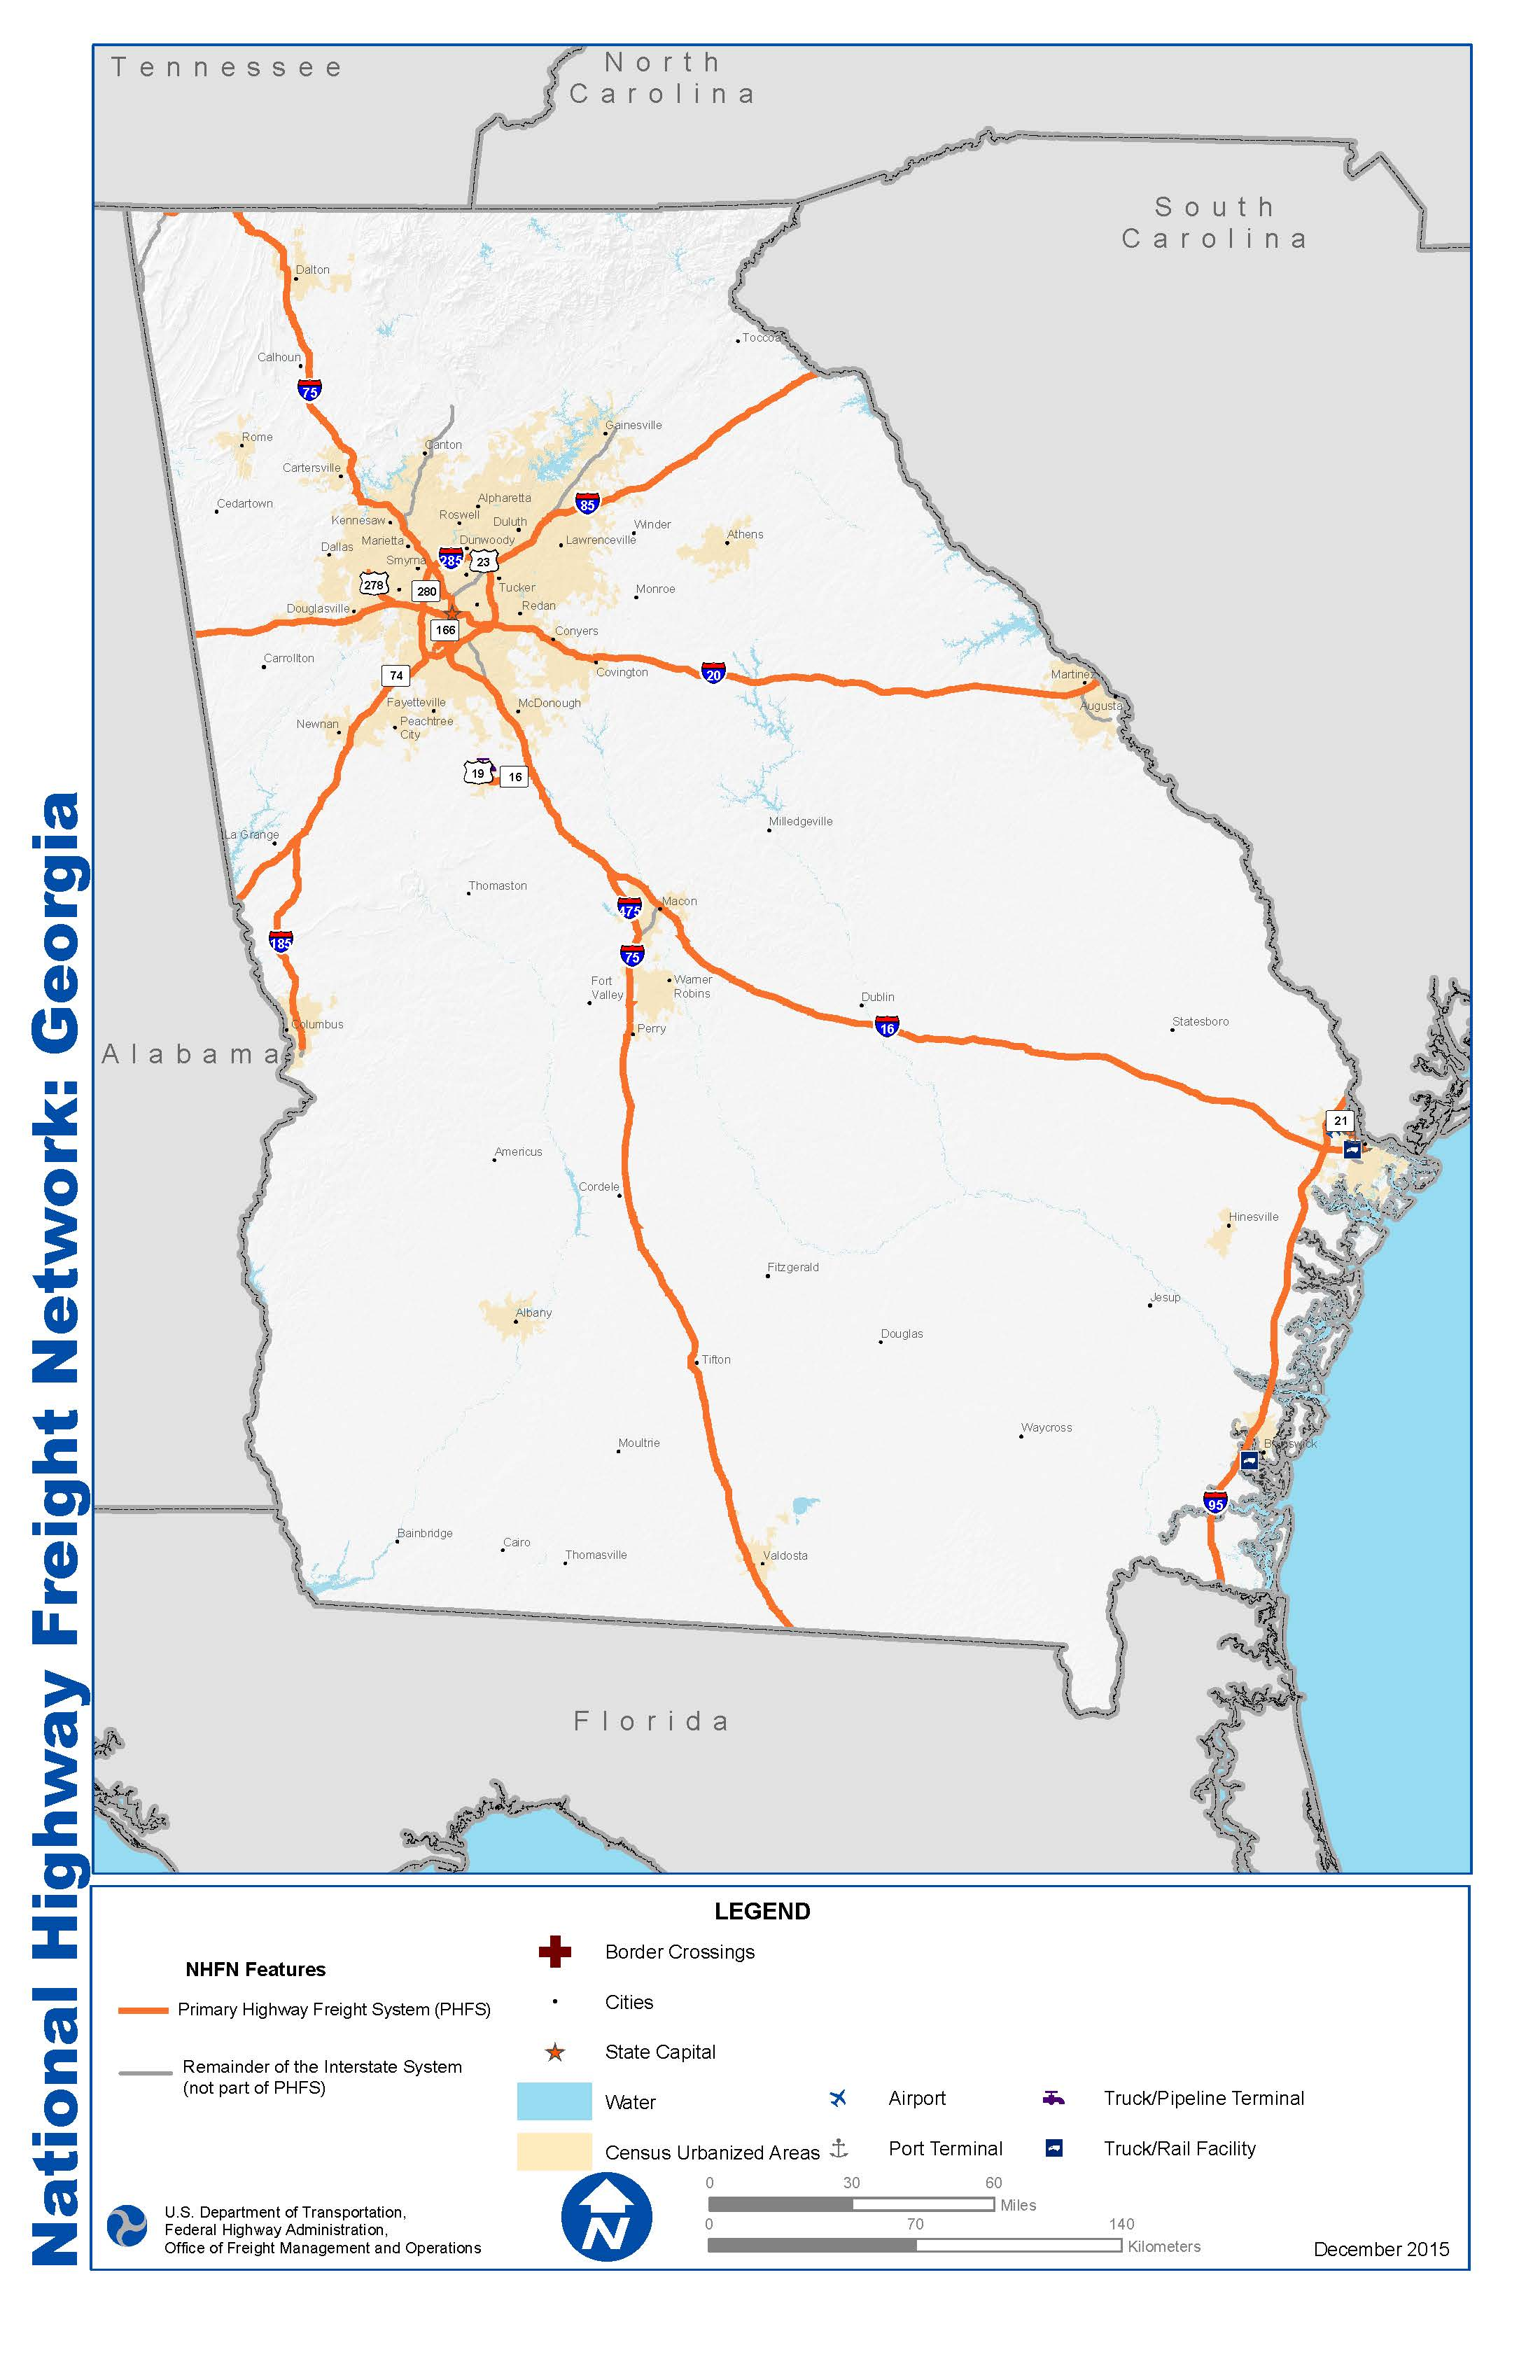 National Highway Freight Network Map And Tables For Georgia FHWA - Georgia national map